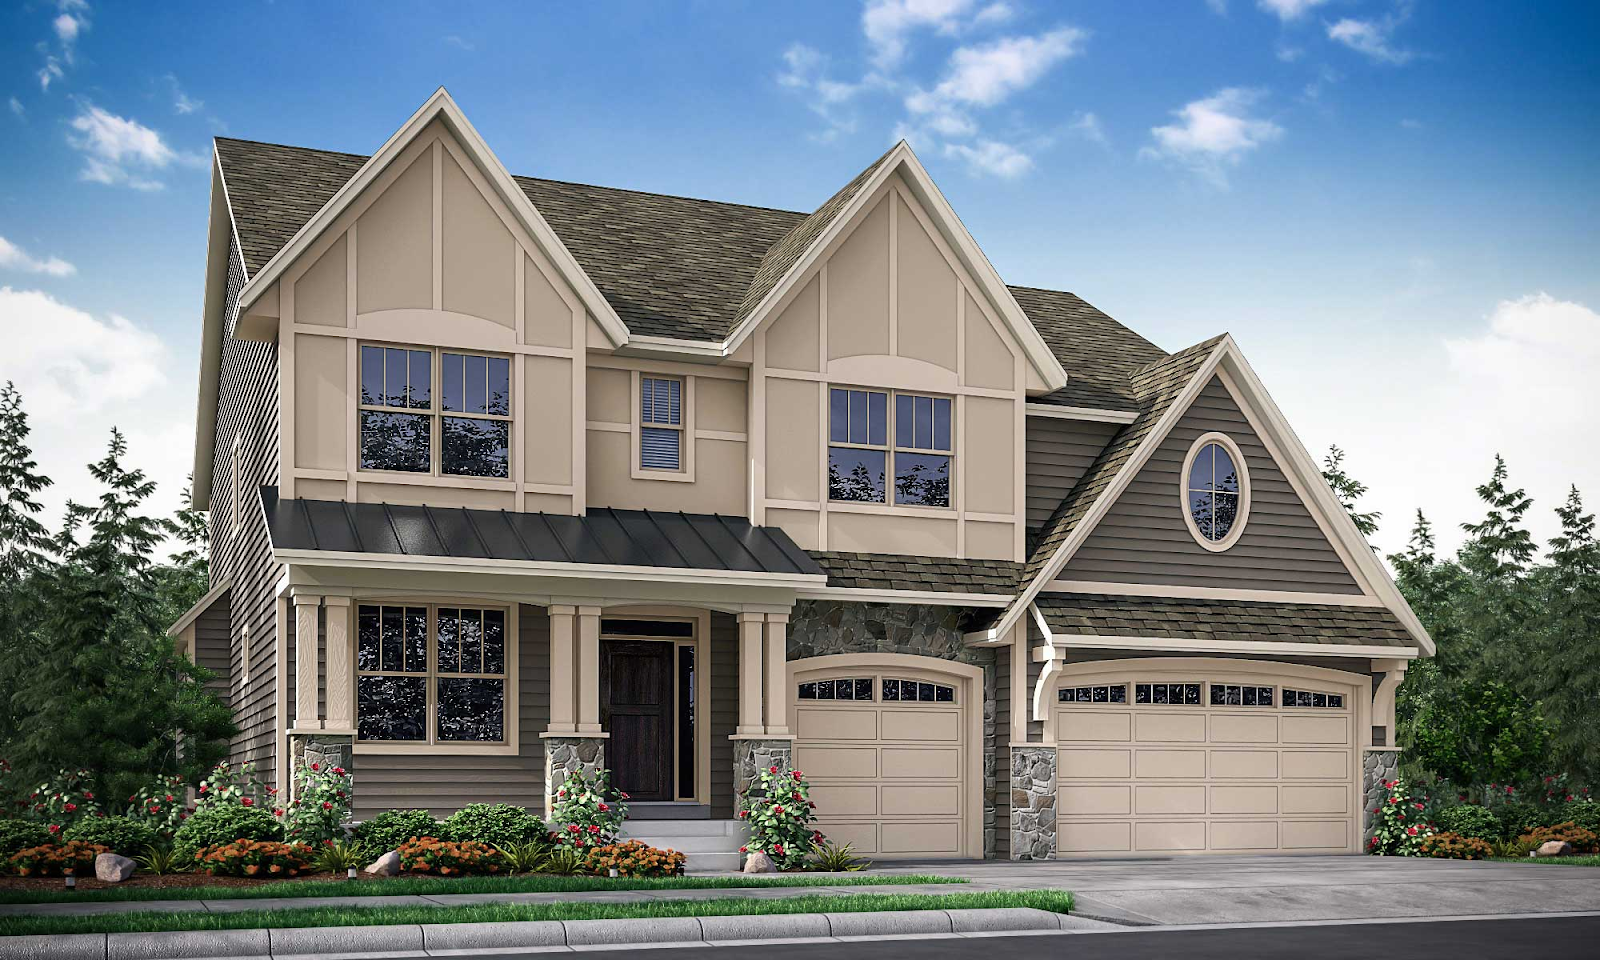 What-are-beautiful-exterior-rendering-ideas-12